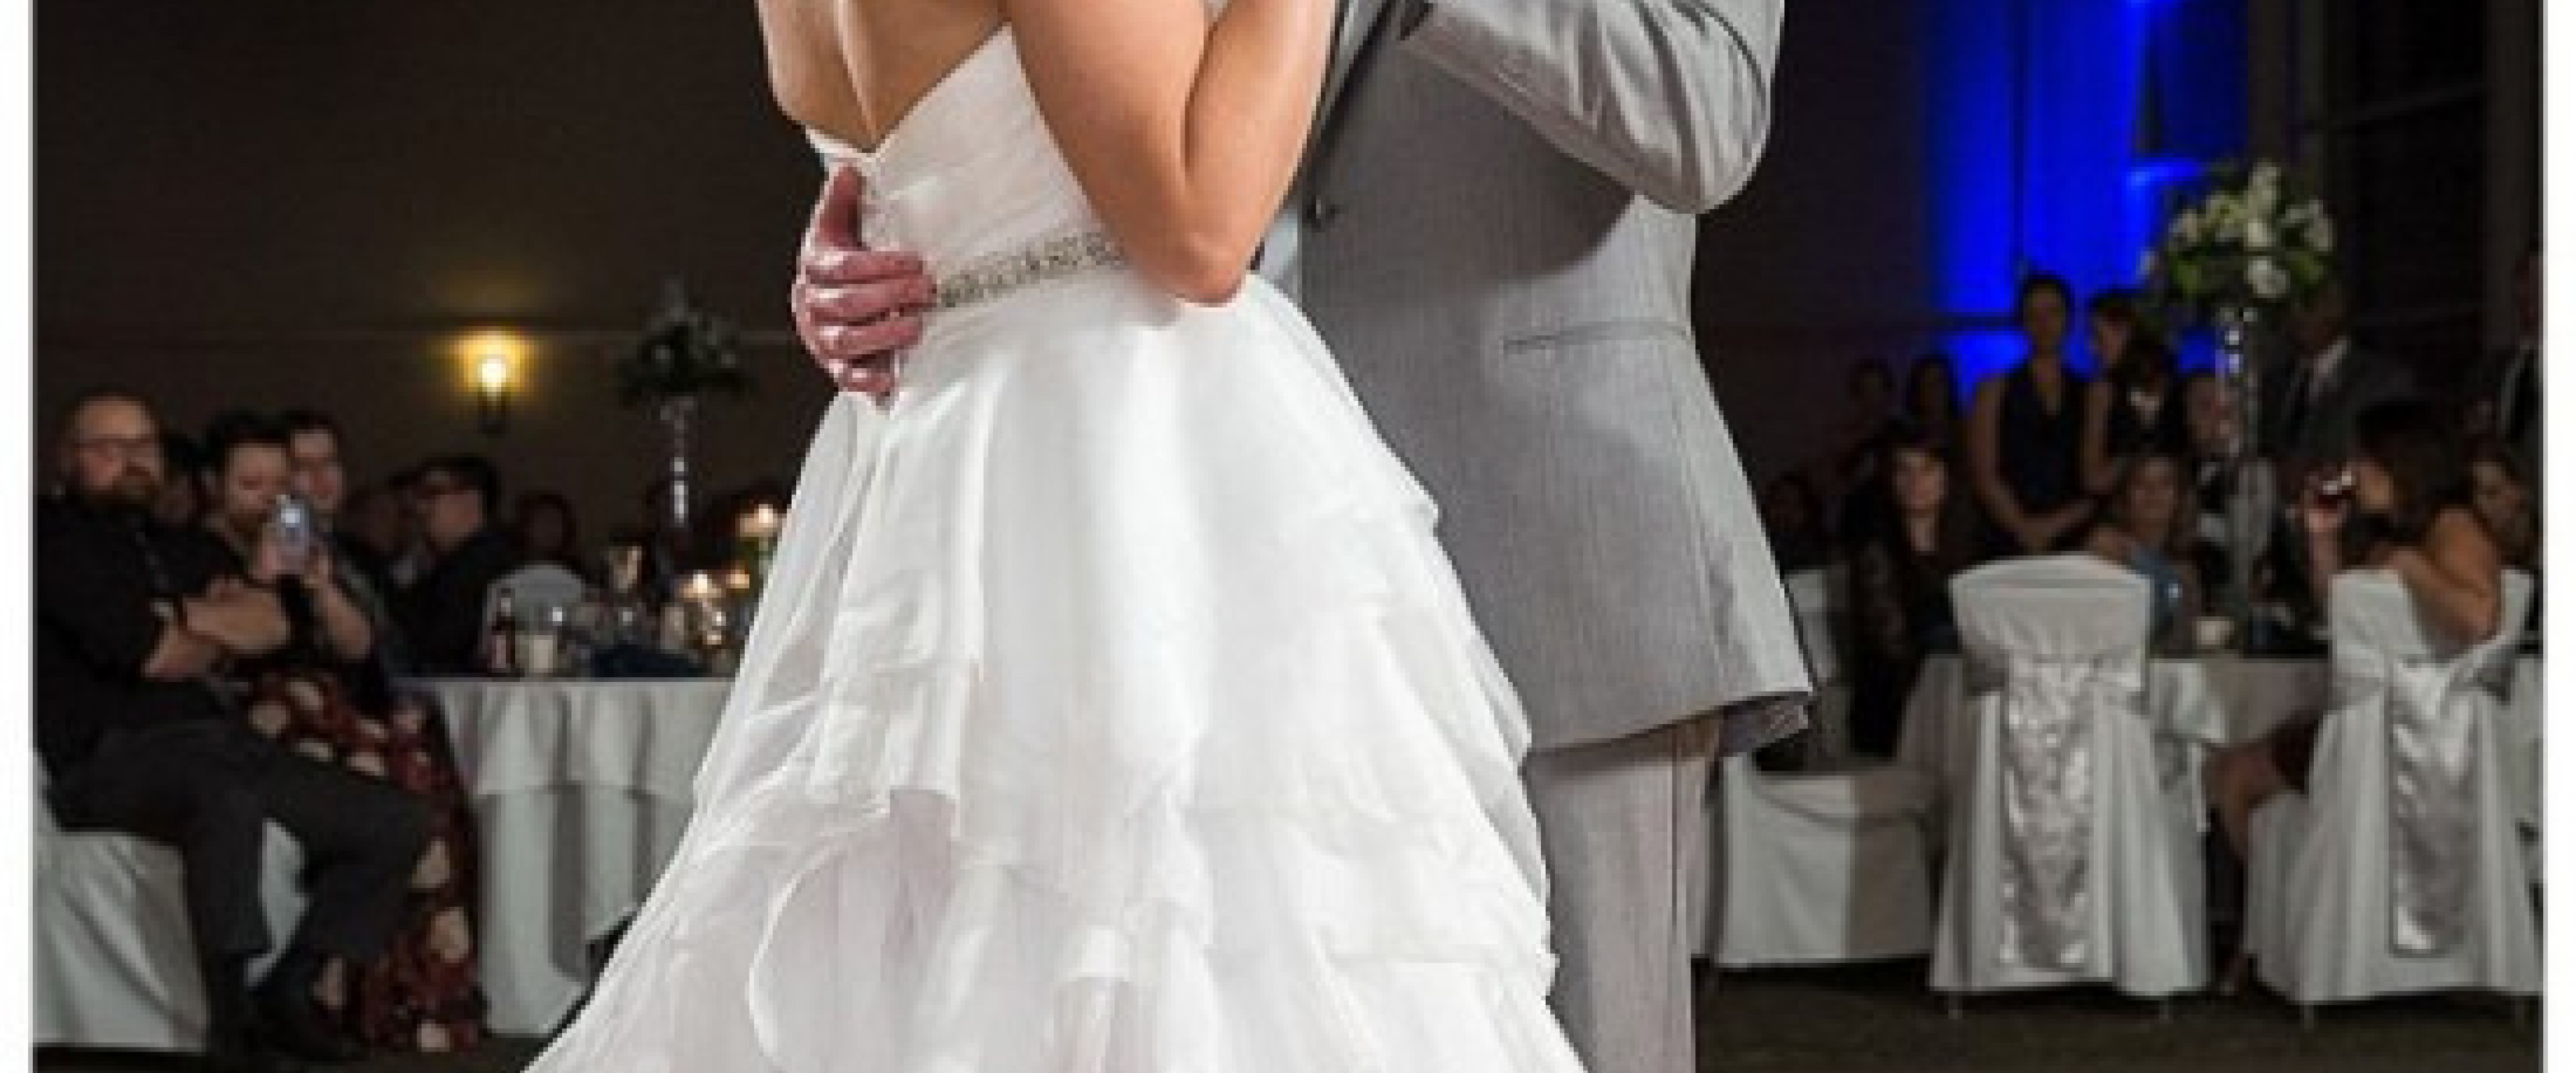 Couple dancing on the dance floor at their wedding